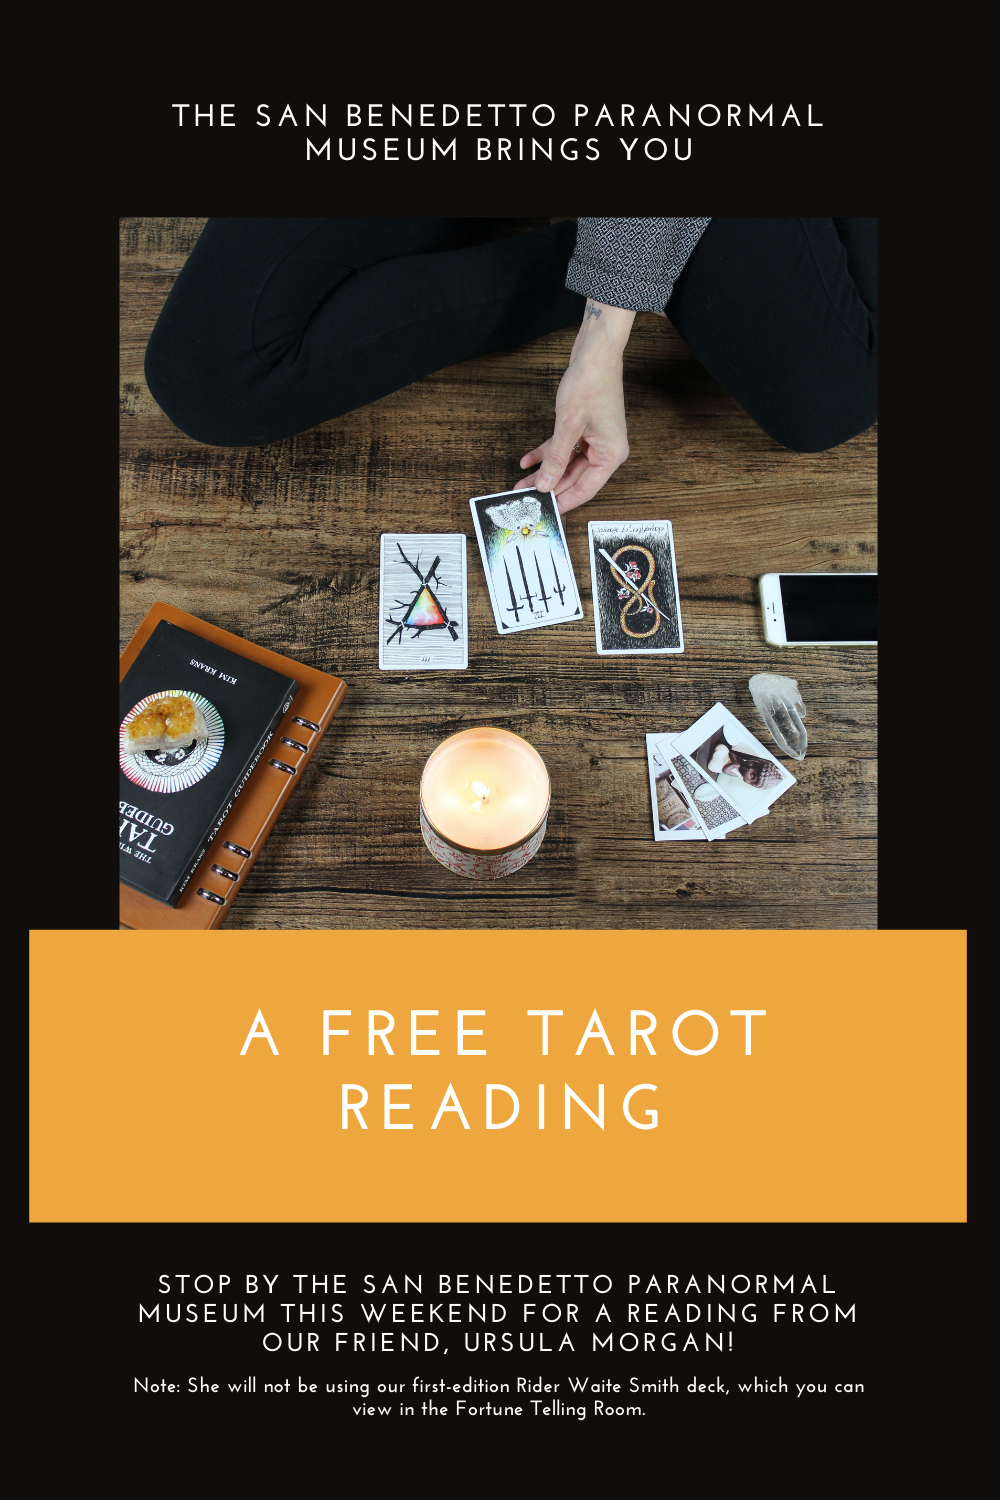 The San Benedetto Paranormal Museum brings you a free Tarot reading. Stop by the museum this weekend for a reading from our friend, Ursula Morgan. Note: She will not be using the first-edition Rider Waite Smith deck, available for viewing in the Fortune Telling Room.